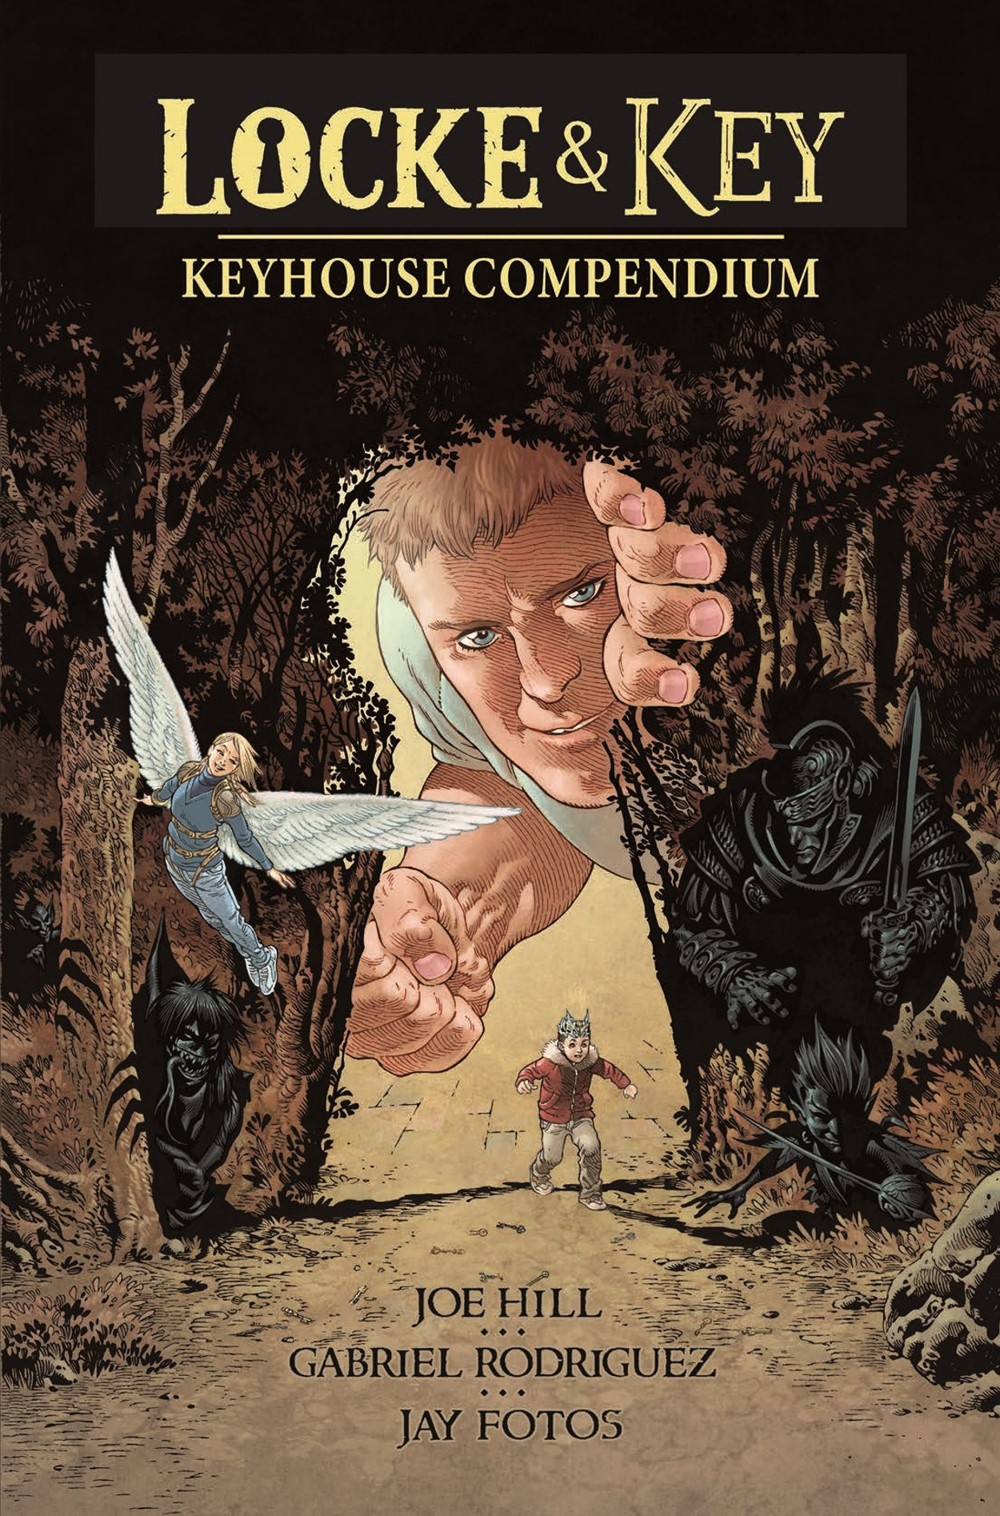 LnK-KeyhouseCompendium-pr-1 ComicList Previews: LOCKE AND KEY KEYHOUSE COMPENDIUM HARDCOVER COLLECTION